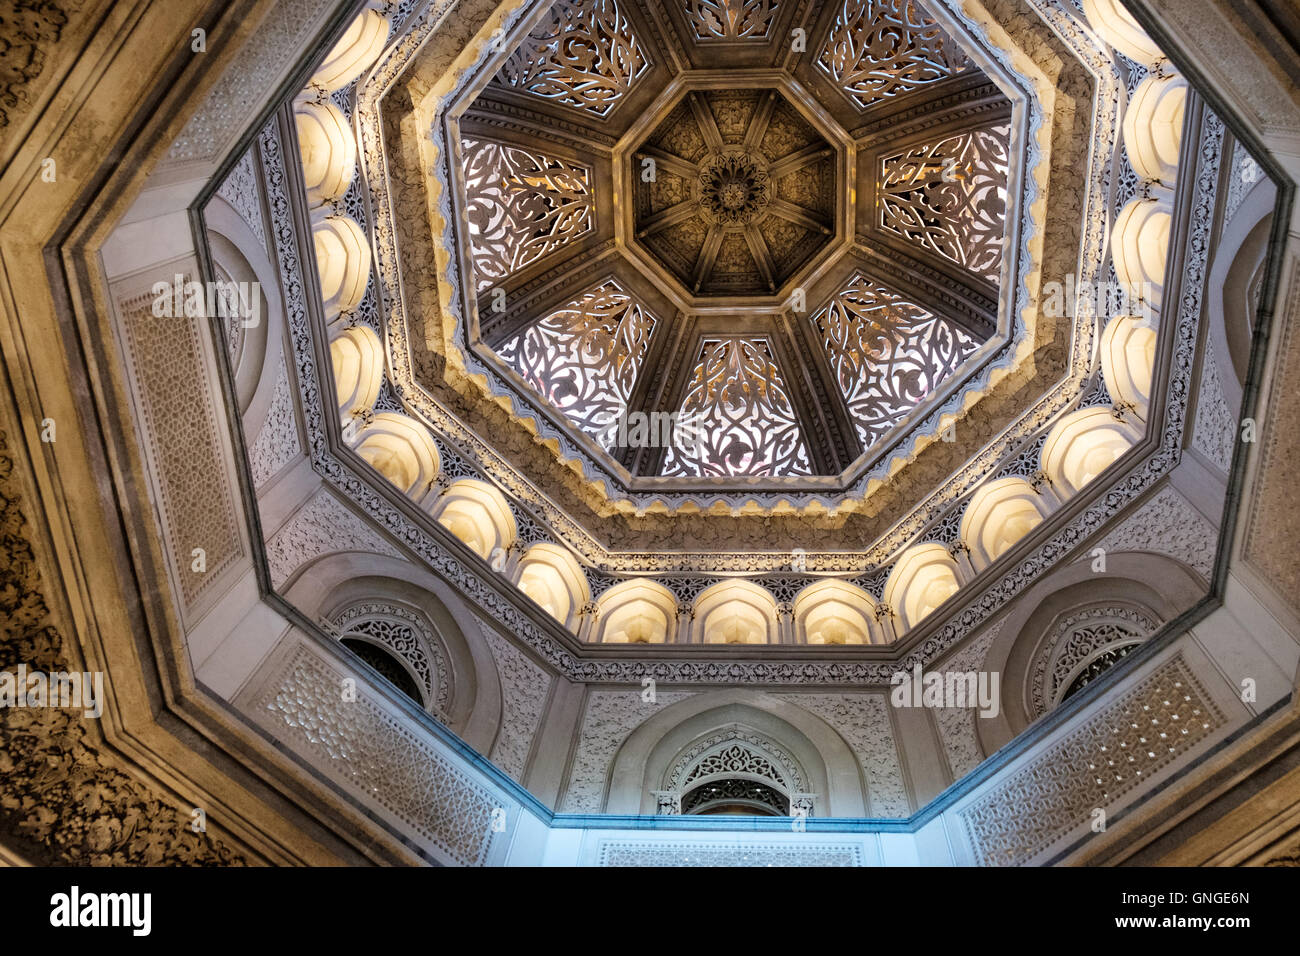 Interiors of the  Monserrate Palace near Sintra, Portugal - Stock Image